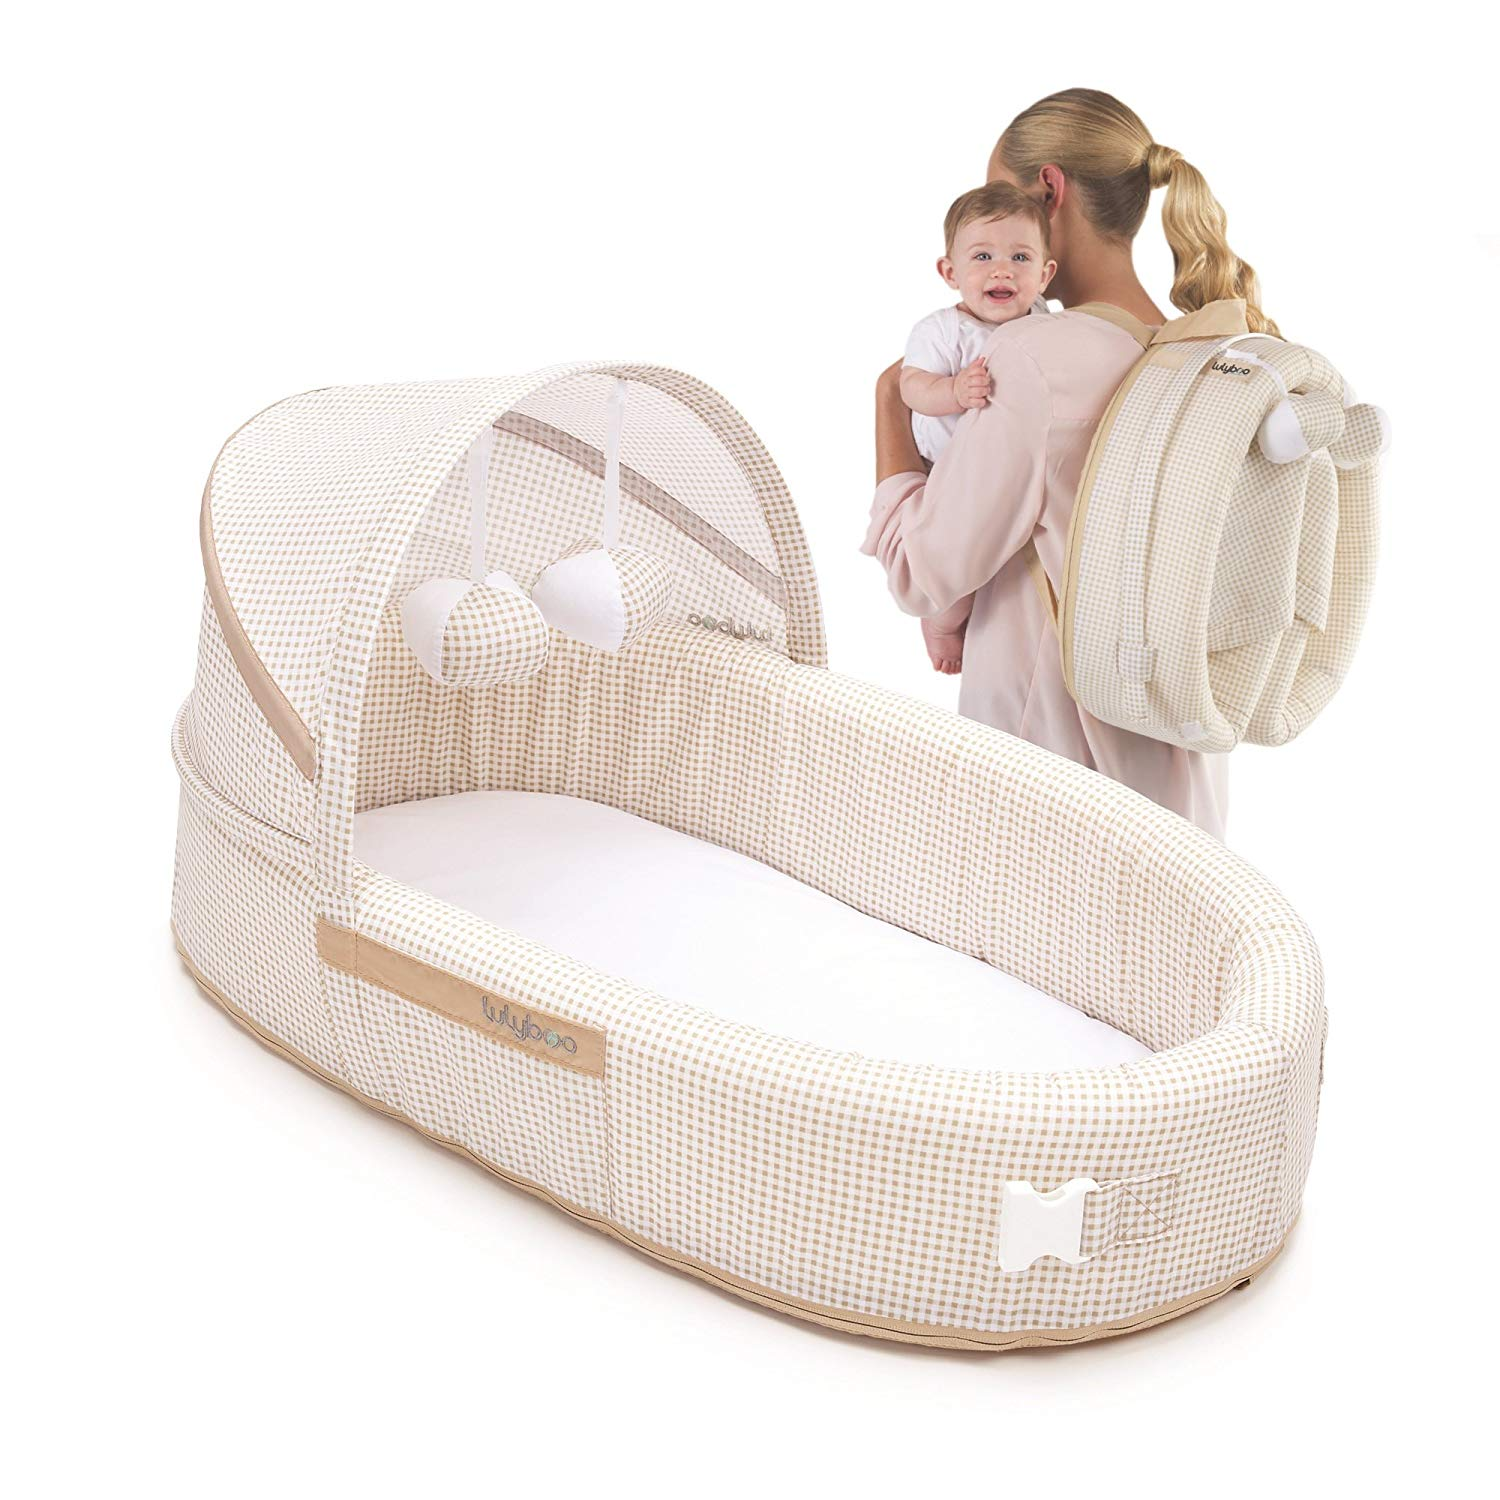 Lulyboo Portable Infant Bed